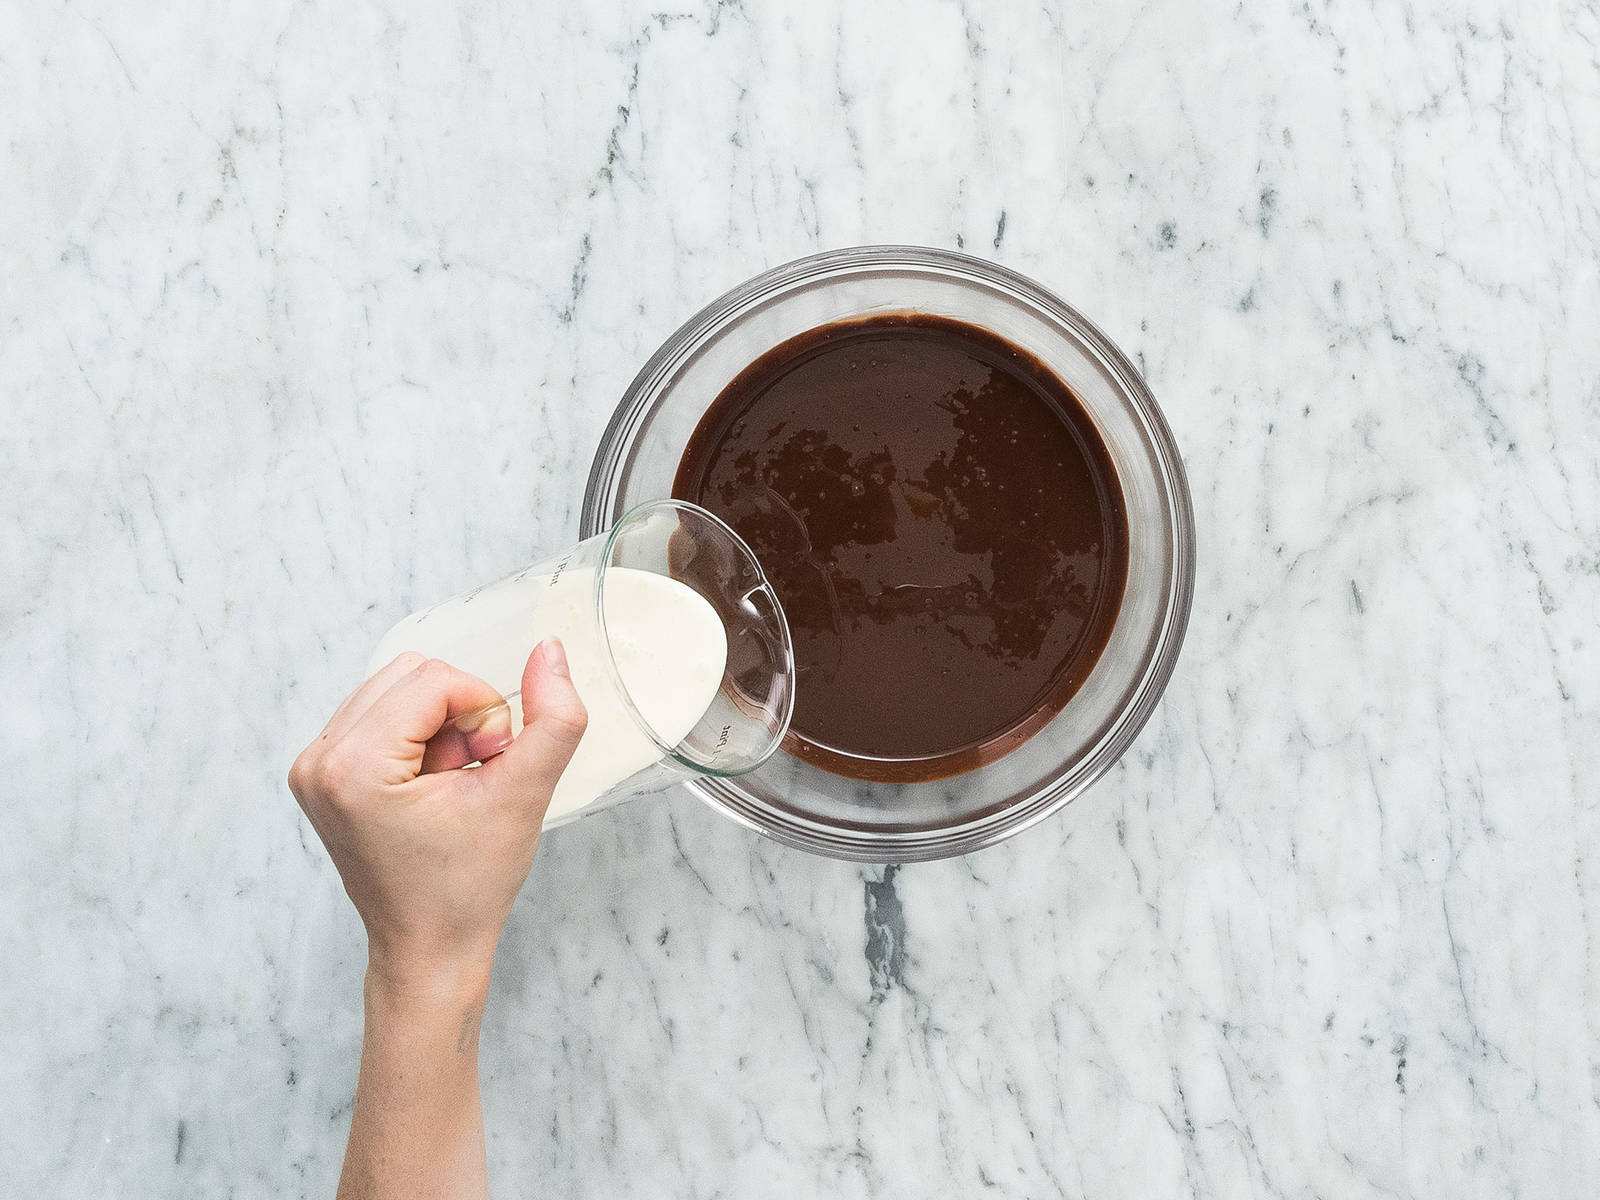 Add dark couverture chocolate to a mixing bowl and melt in a microwave, then add coconut oil and heavy cream. Stir until combined and let cool for approx. 5 – 10 min.